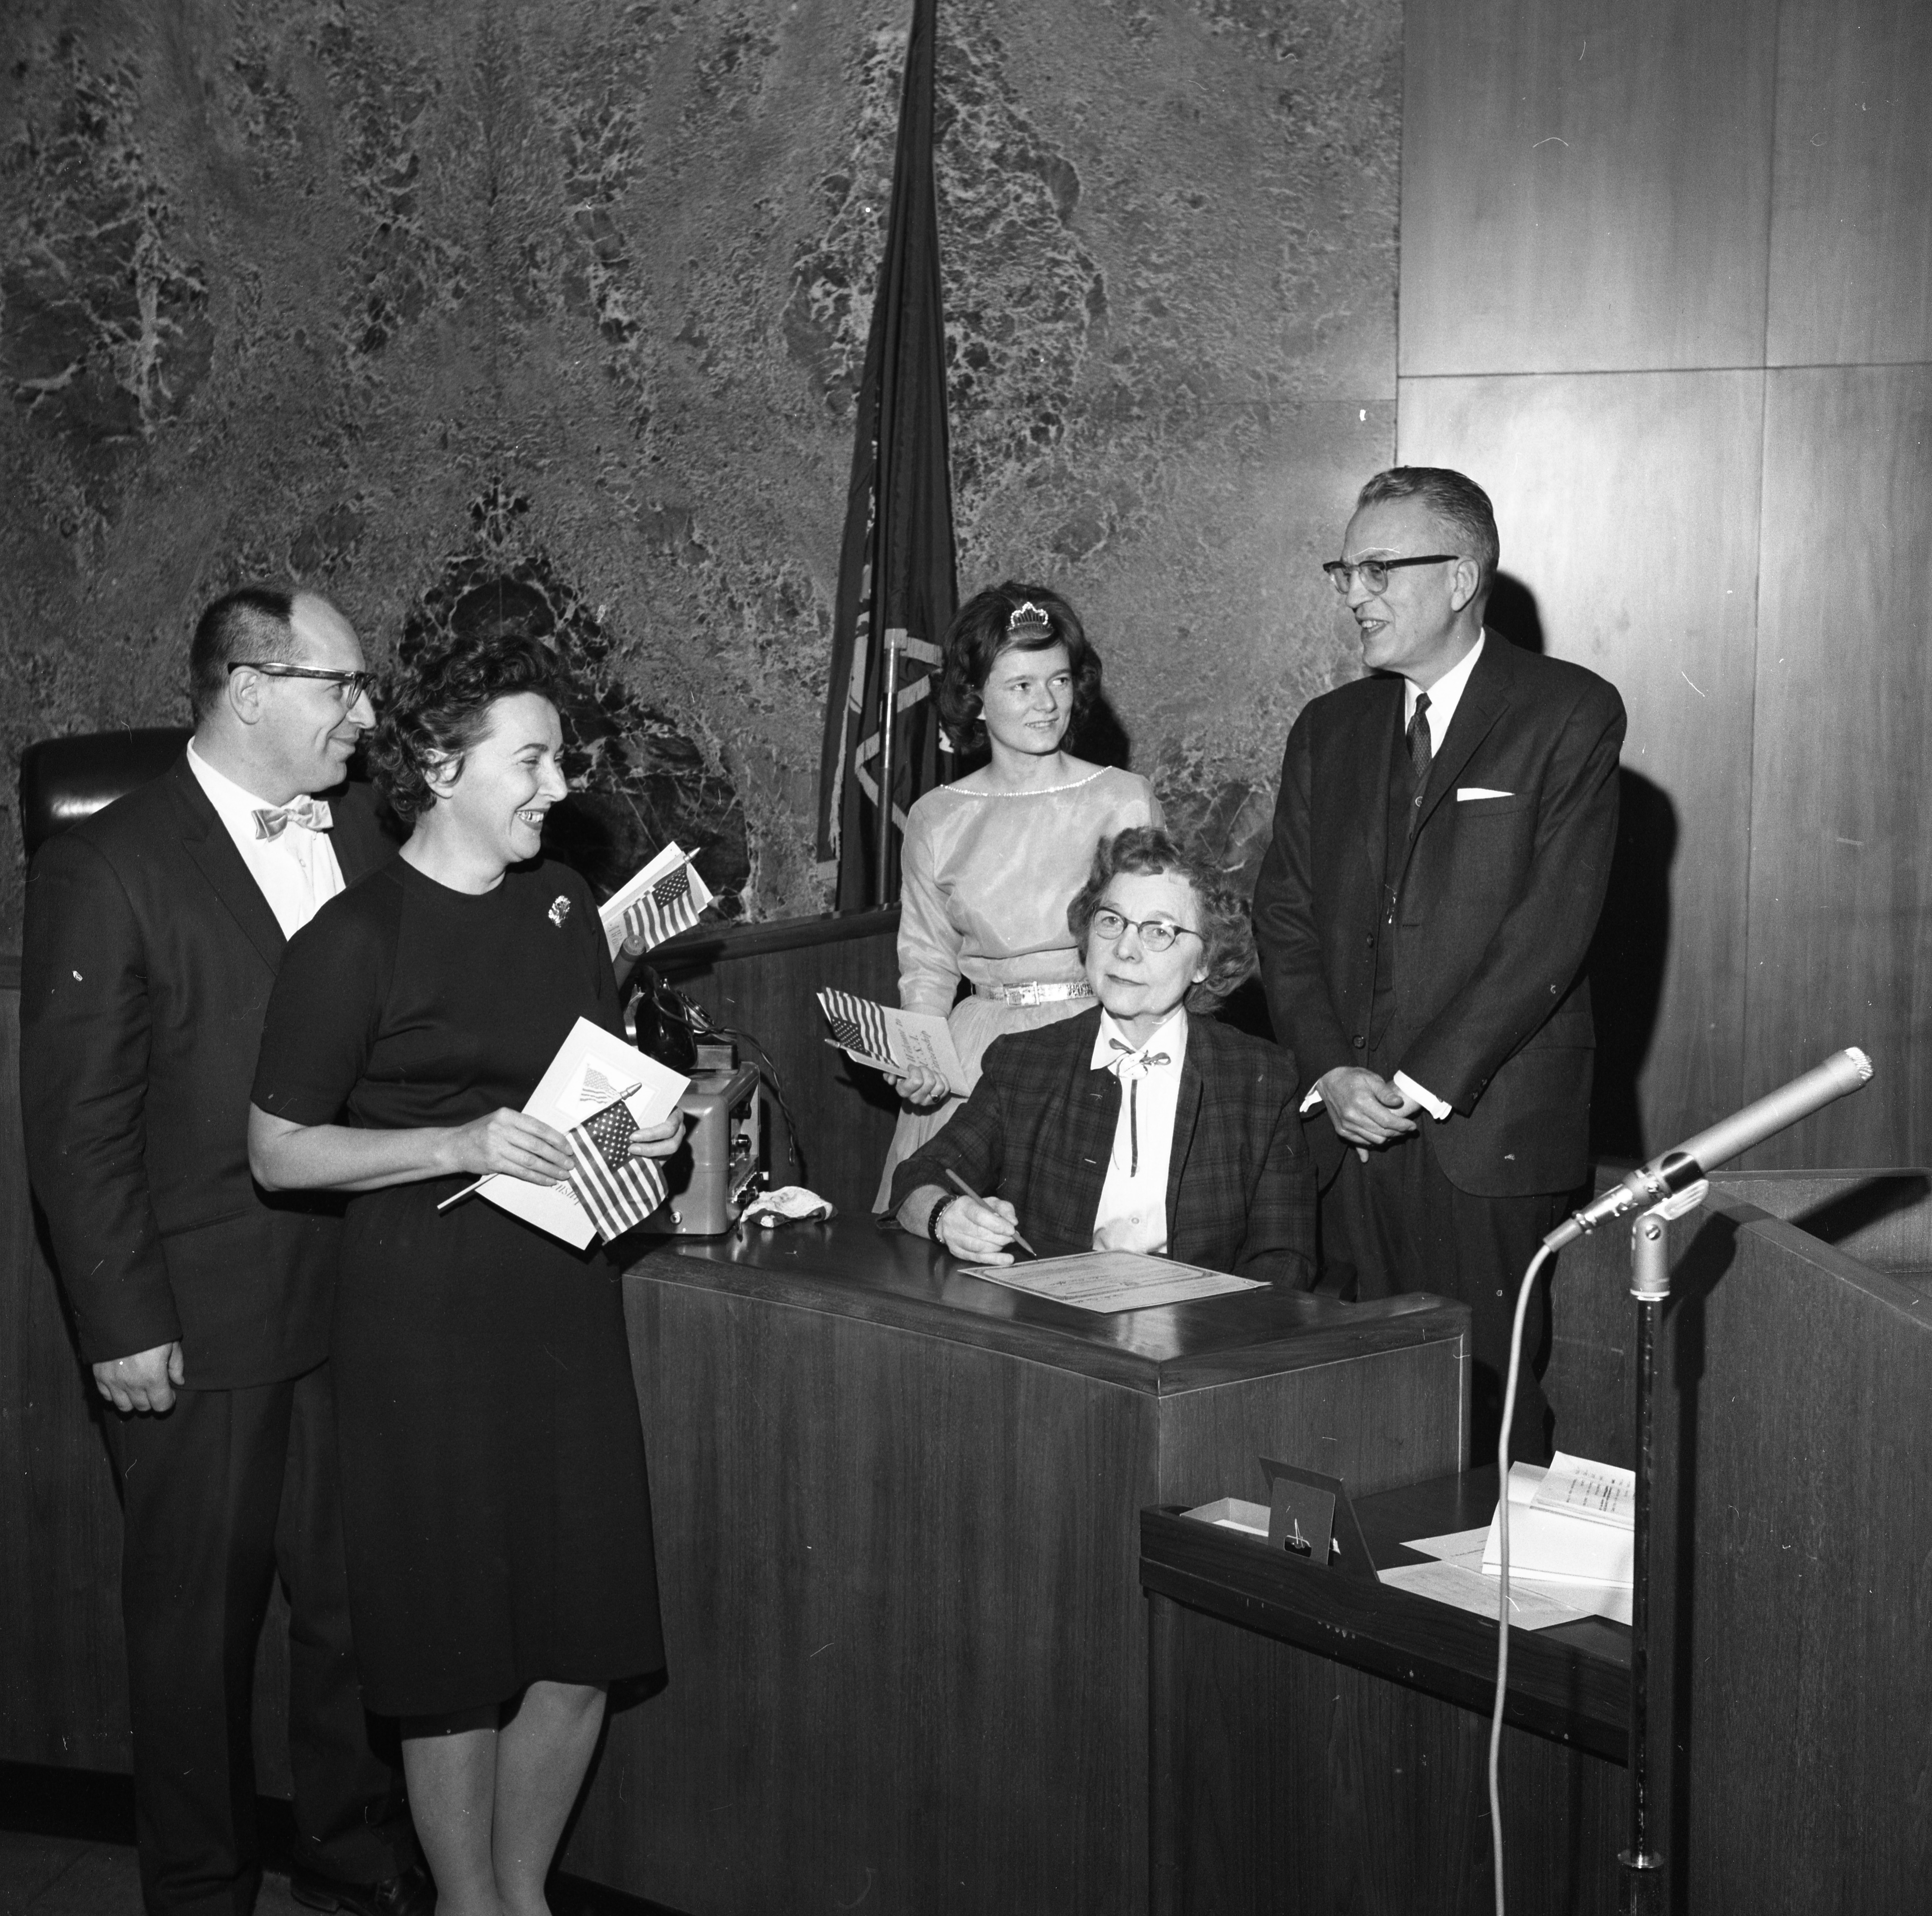 County Clerk Luella M. Smith Completes Citizenship Papers for New Citizens, November 1962 image